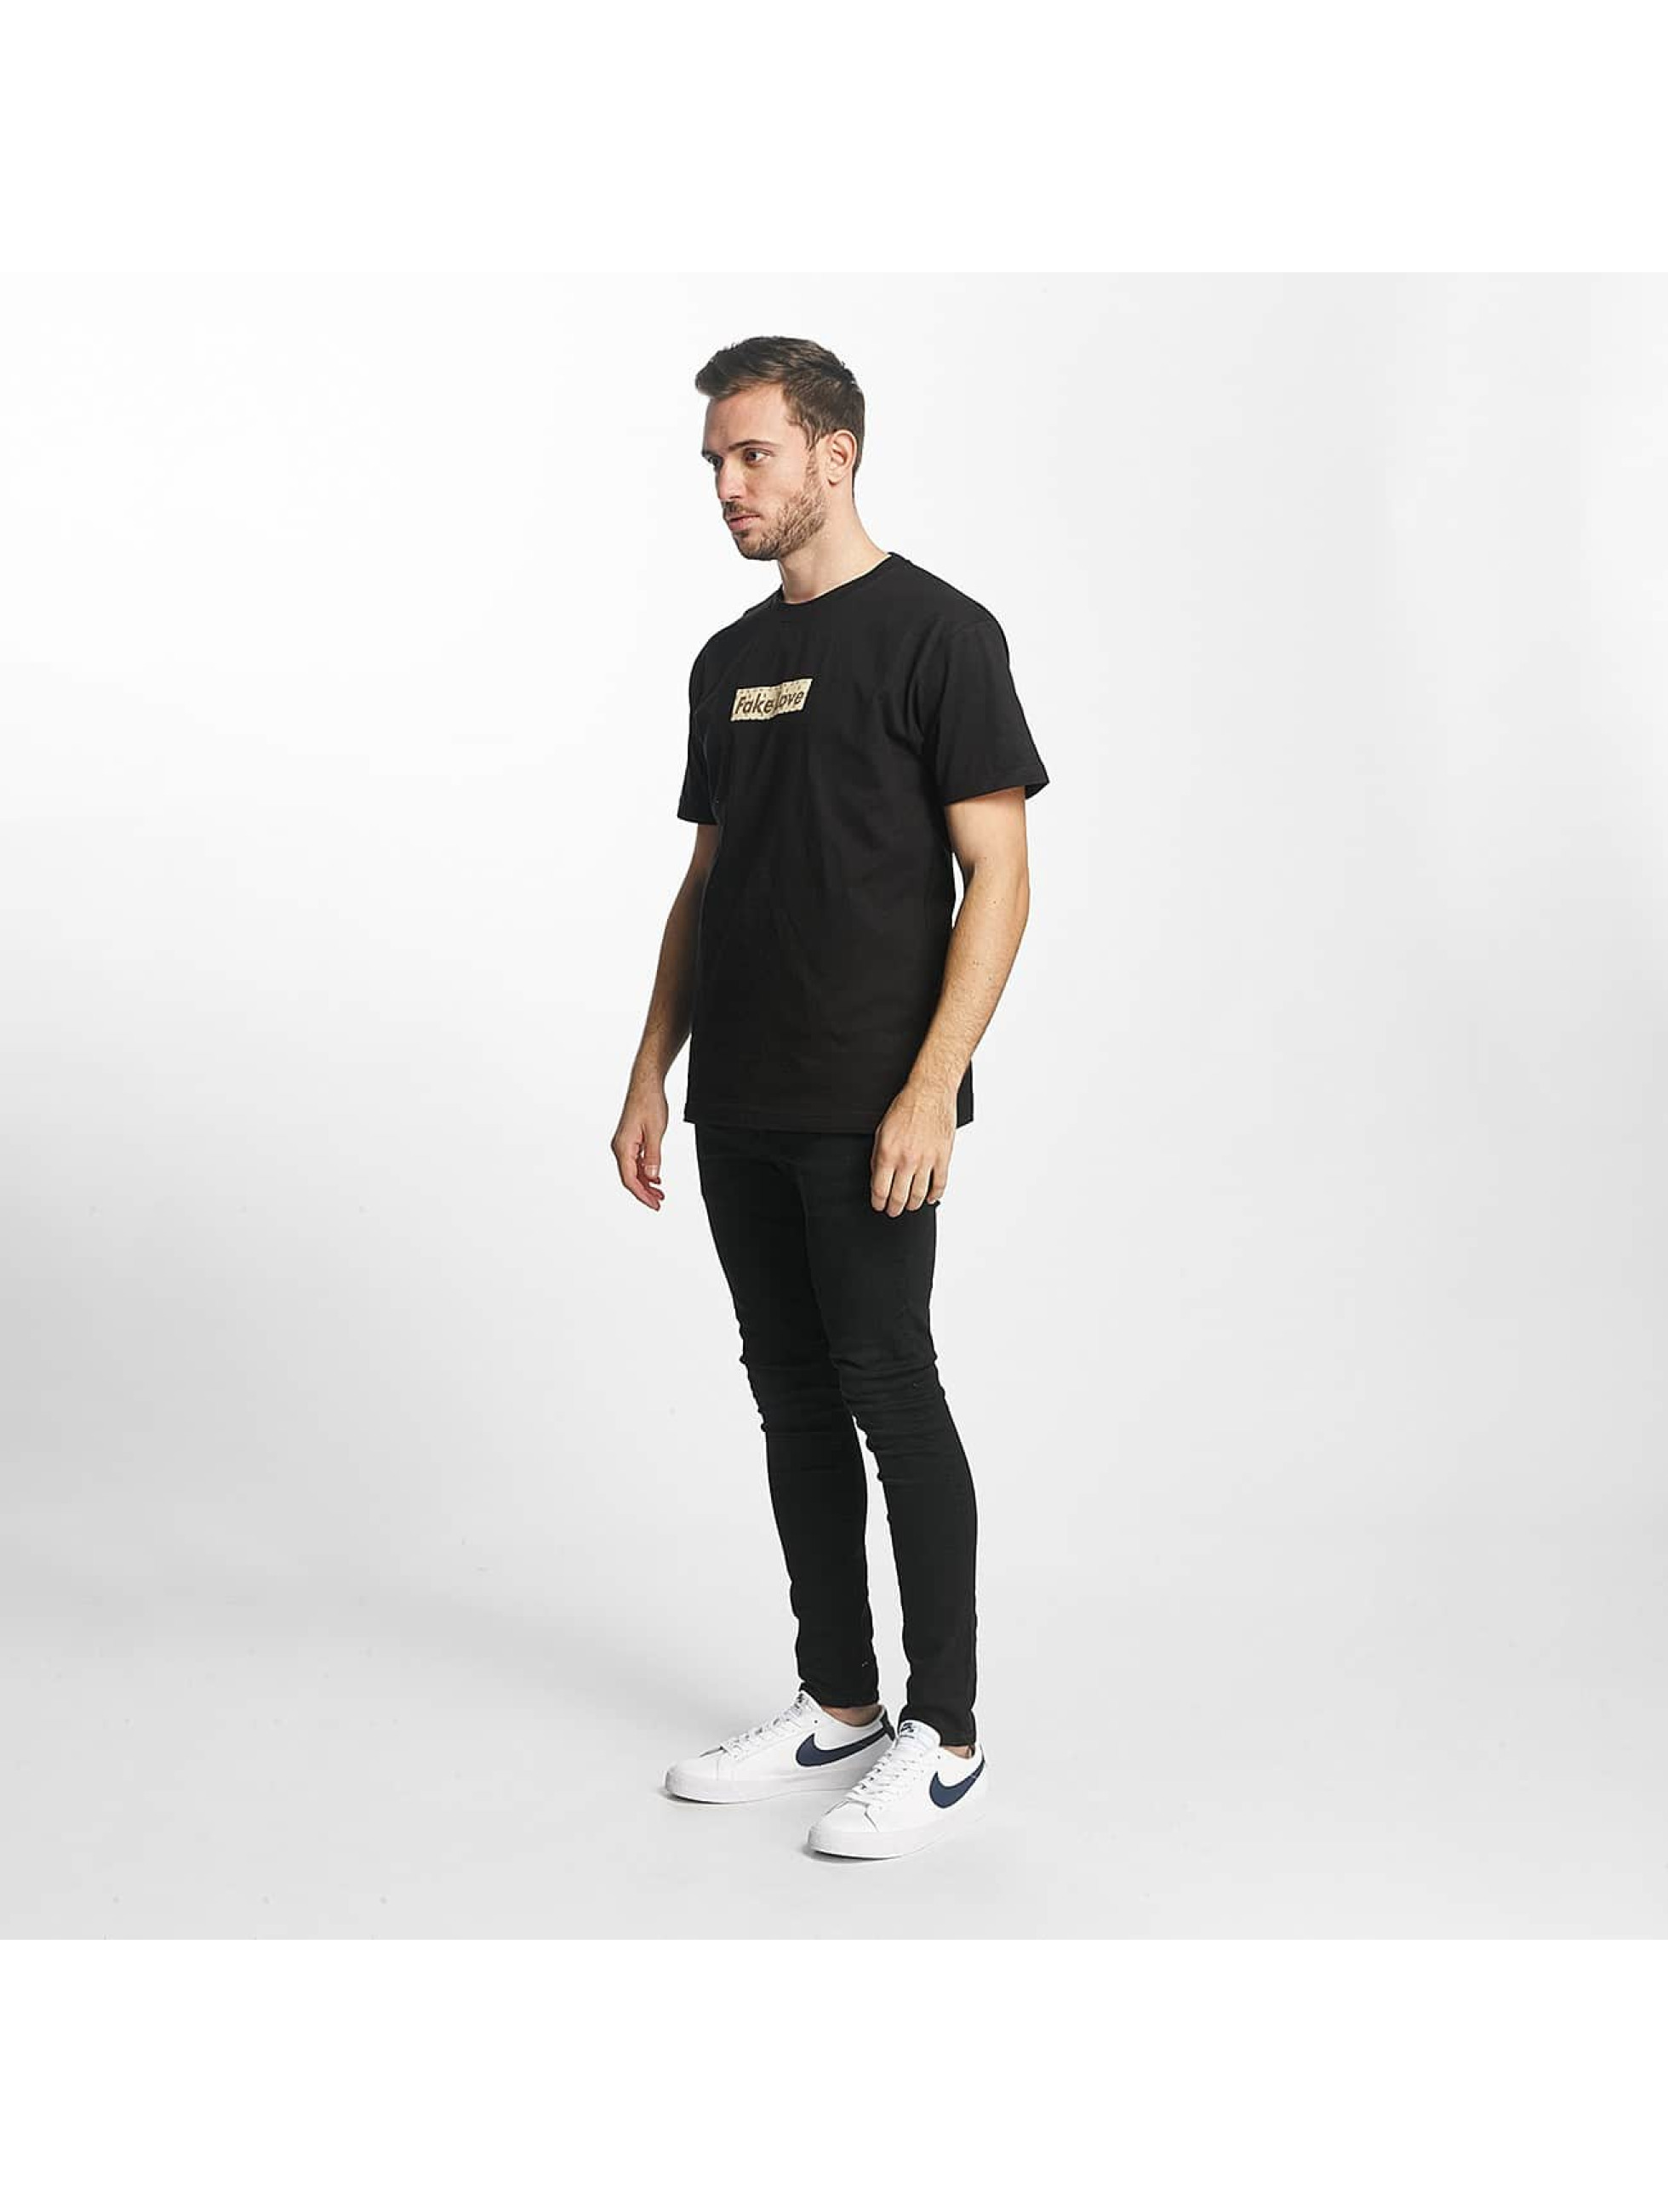 Mister Tee Camiseta Fake Love negro